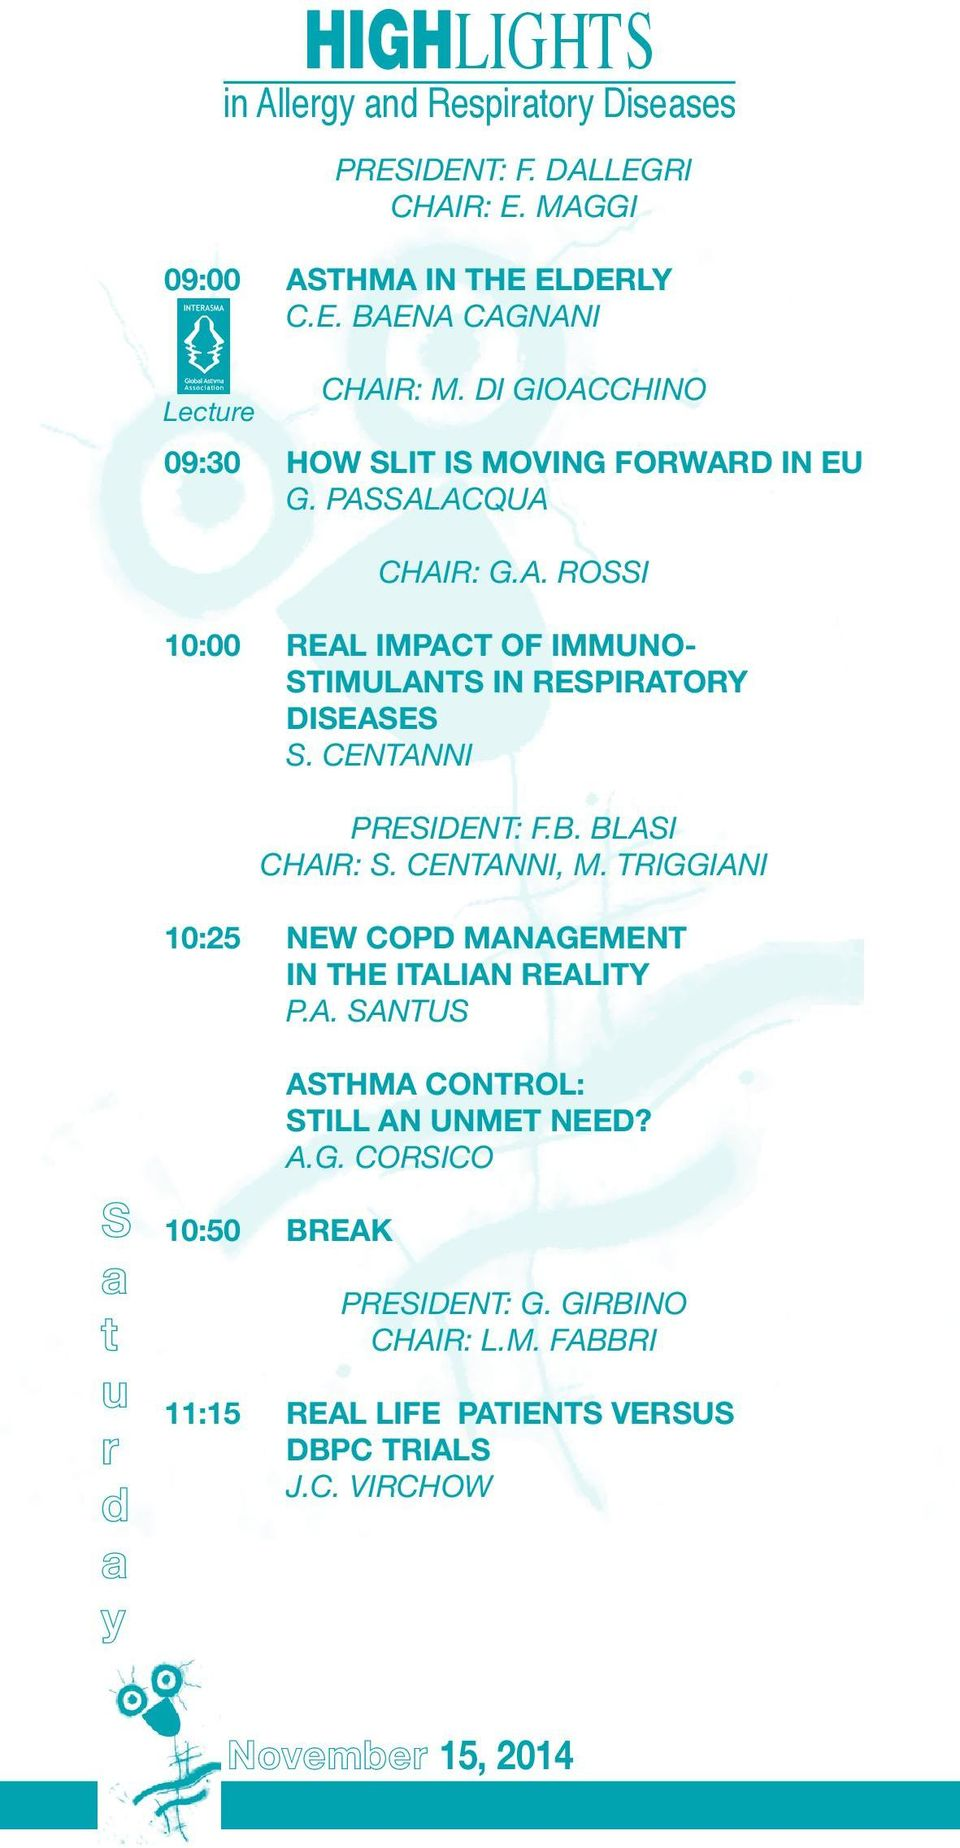 CENTANNI PRESIDENT: F.B. BLASI CHAIR: S. CENTANNI, M. TRIGGIANI 10:25 NEW COPD MANAGEMENT IN THE ITALIAN REALITY P.A. SANTUS S t u 10:50 BREAK ASTHMA CONTROL: STILL AN UNMET NEED?